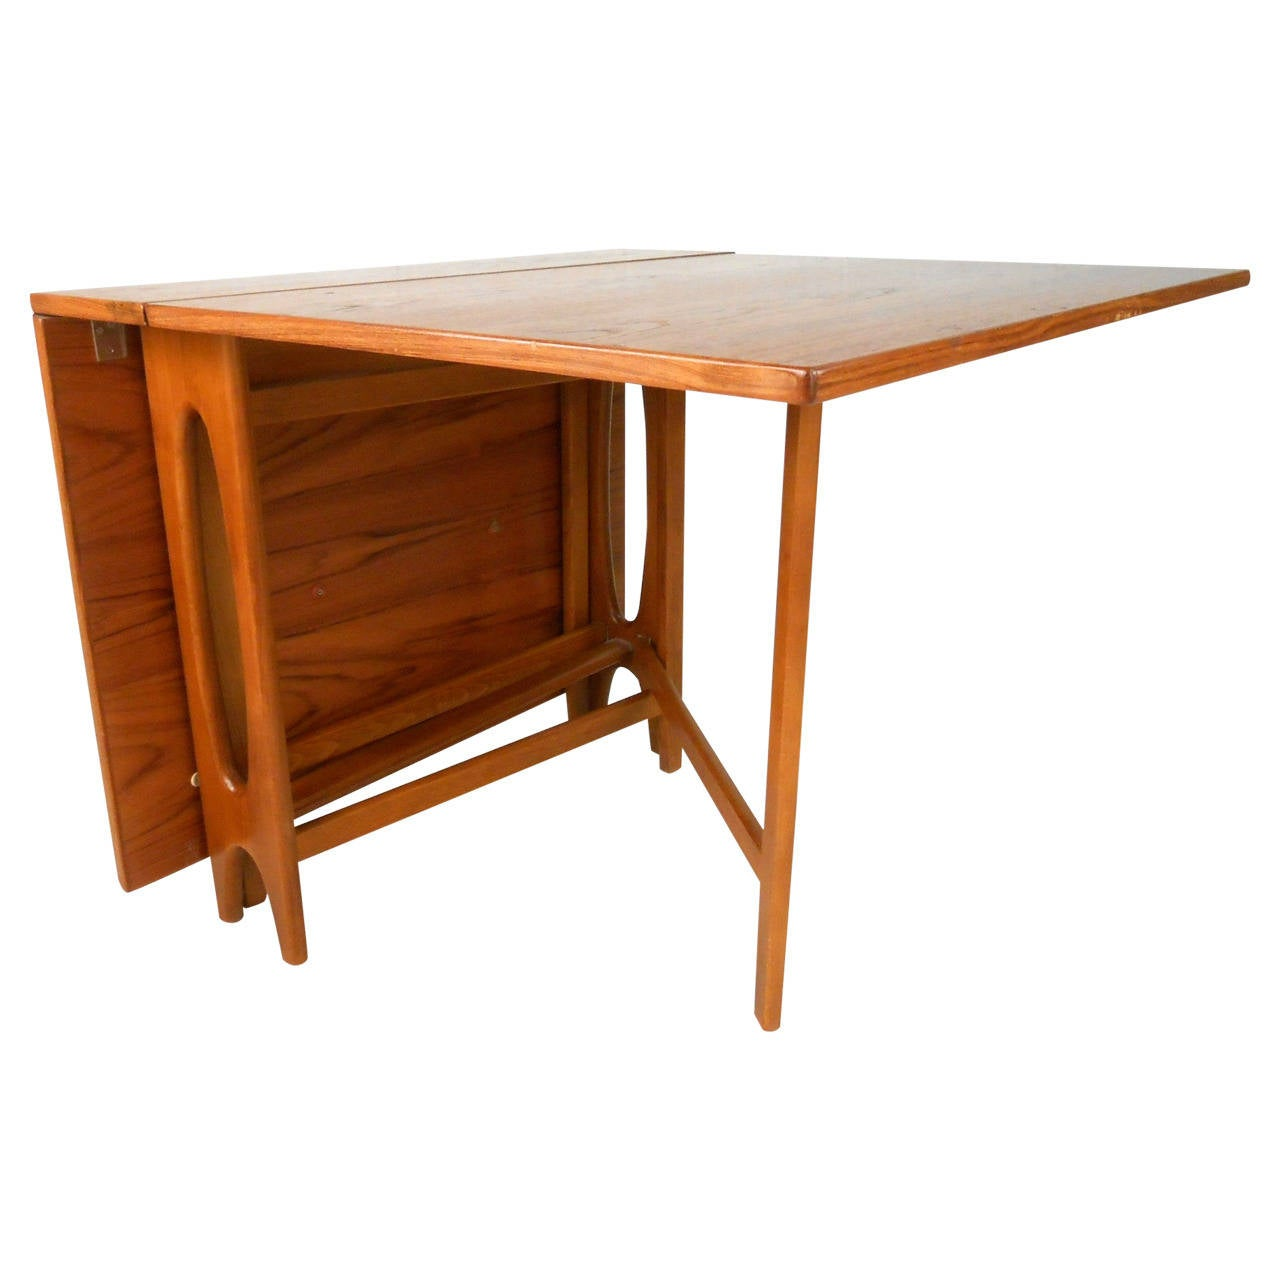 Mid century modern bruno mathsson style teak drop leaf for Drop leaf dining table